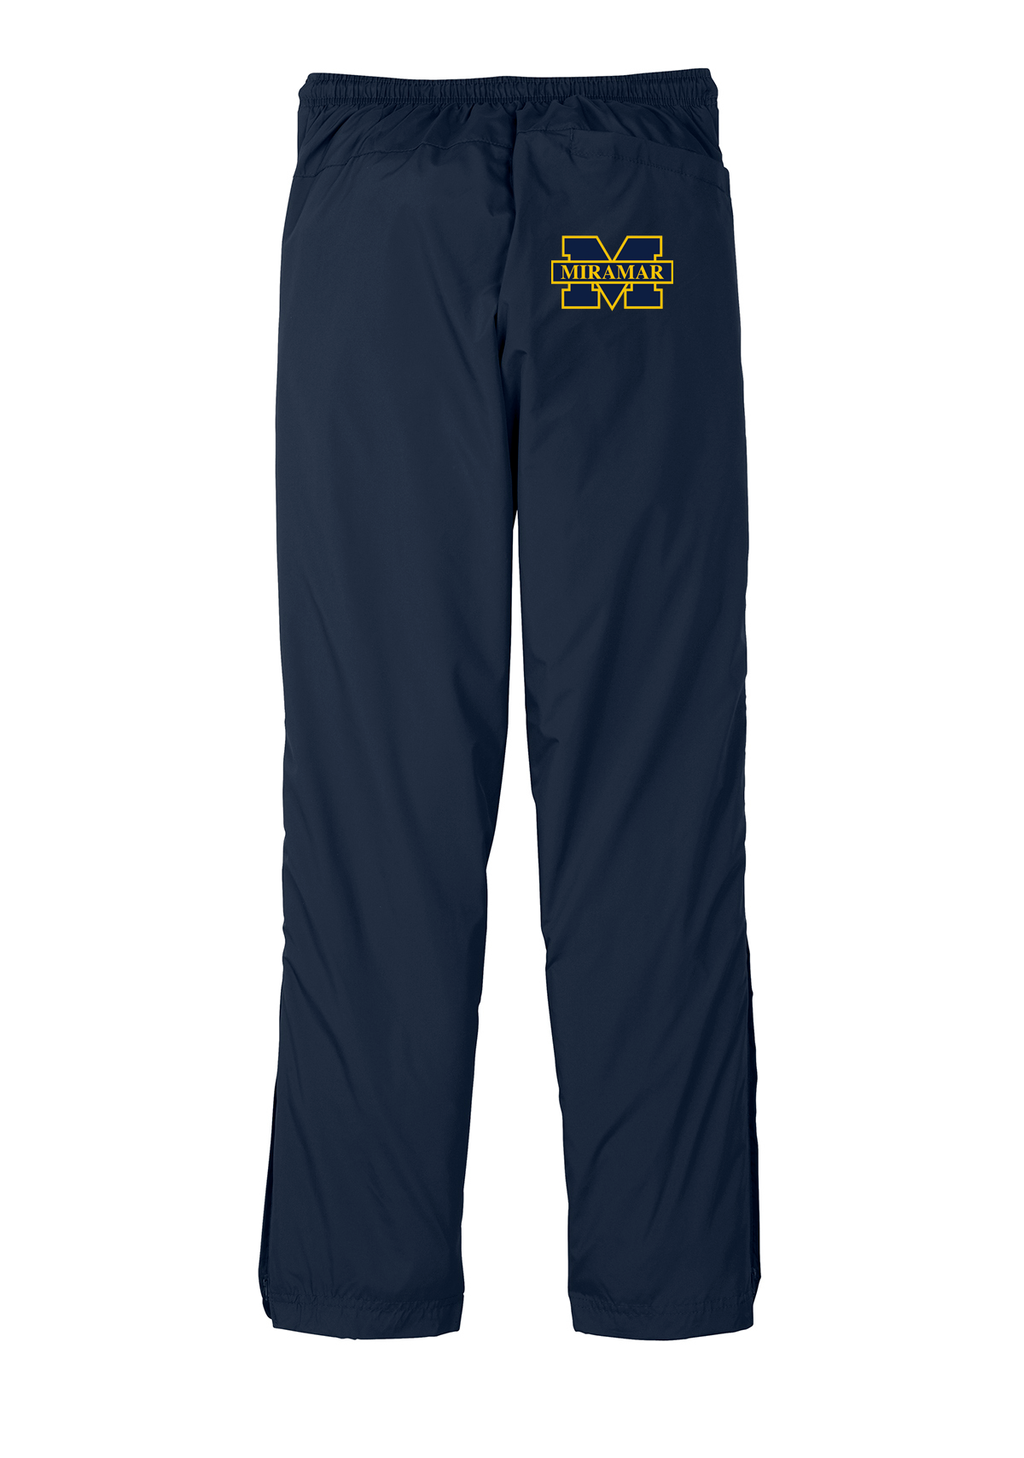 Miramar Wolverines Football Rain/Wind Pants